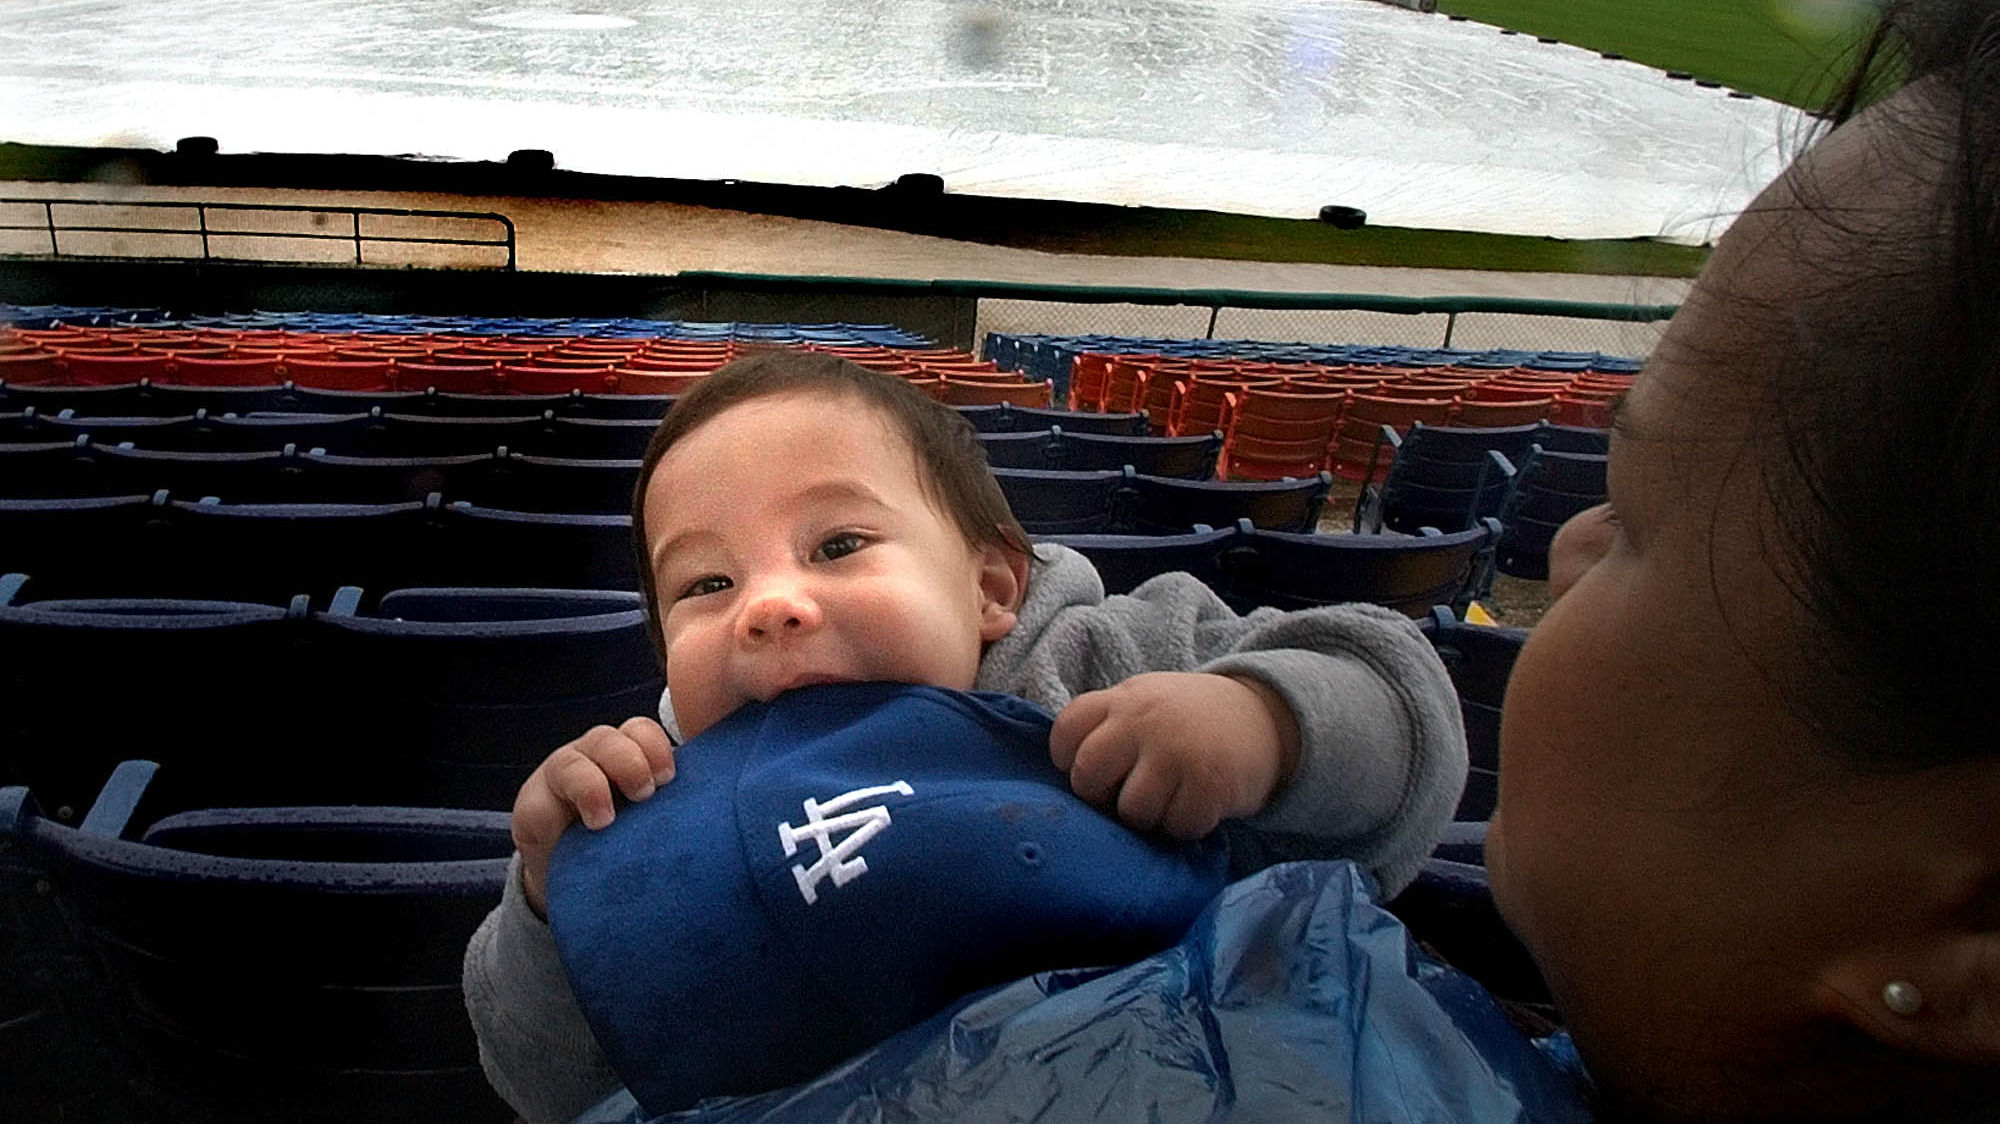 Teething ten-month-old Zach Darker chews on his baseball cap as his mother Cathy Darker, of Orange County, Ca., holds him at Dodgertown in Vero Beach, Fla., Thursday, March 17, 2005. The exhibition game between the Houston Astros and Los Angels Dodgers was called due to rain.